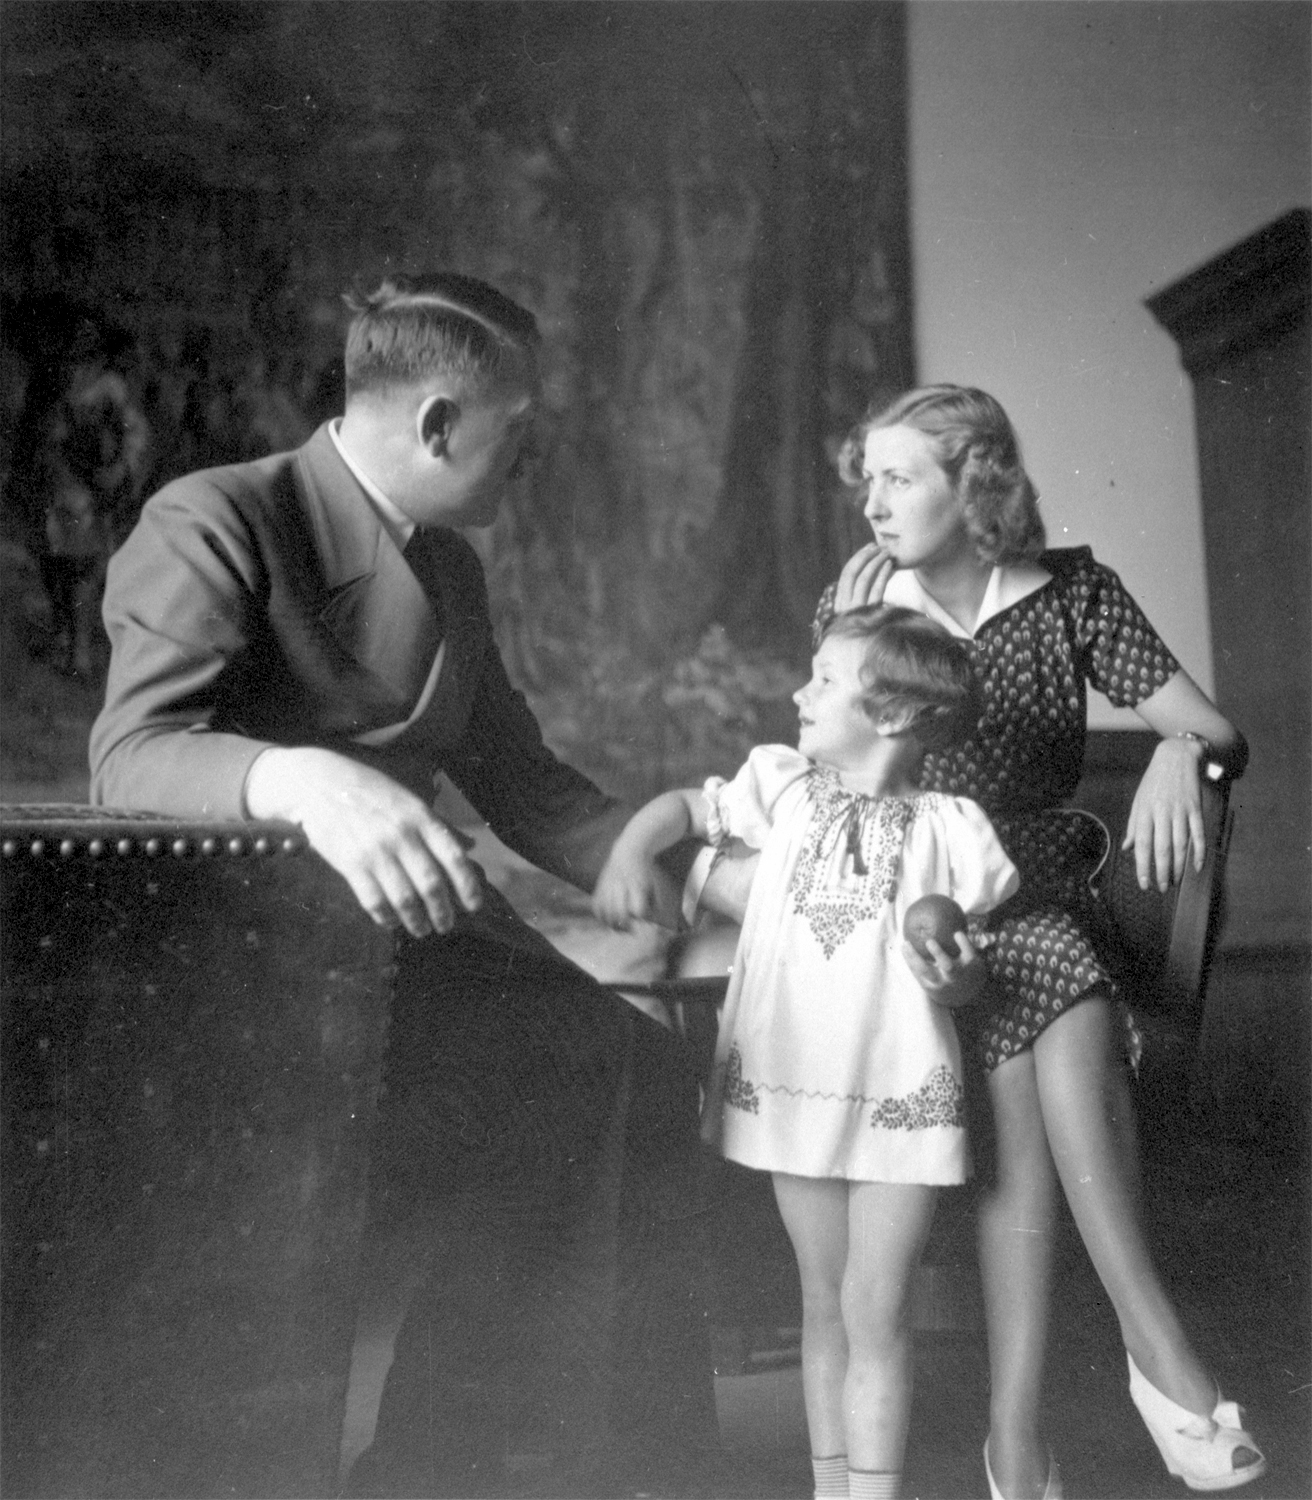 Adolf Hitler with Eva Braun and Uschi Schneider in the Berghof great hall, from Eva Braun's albums